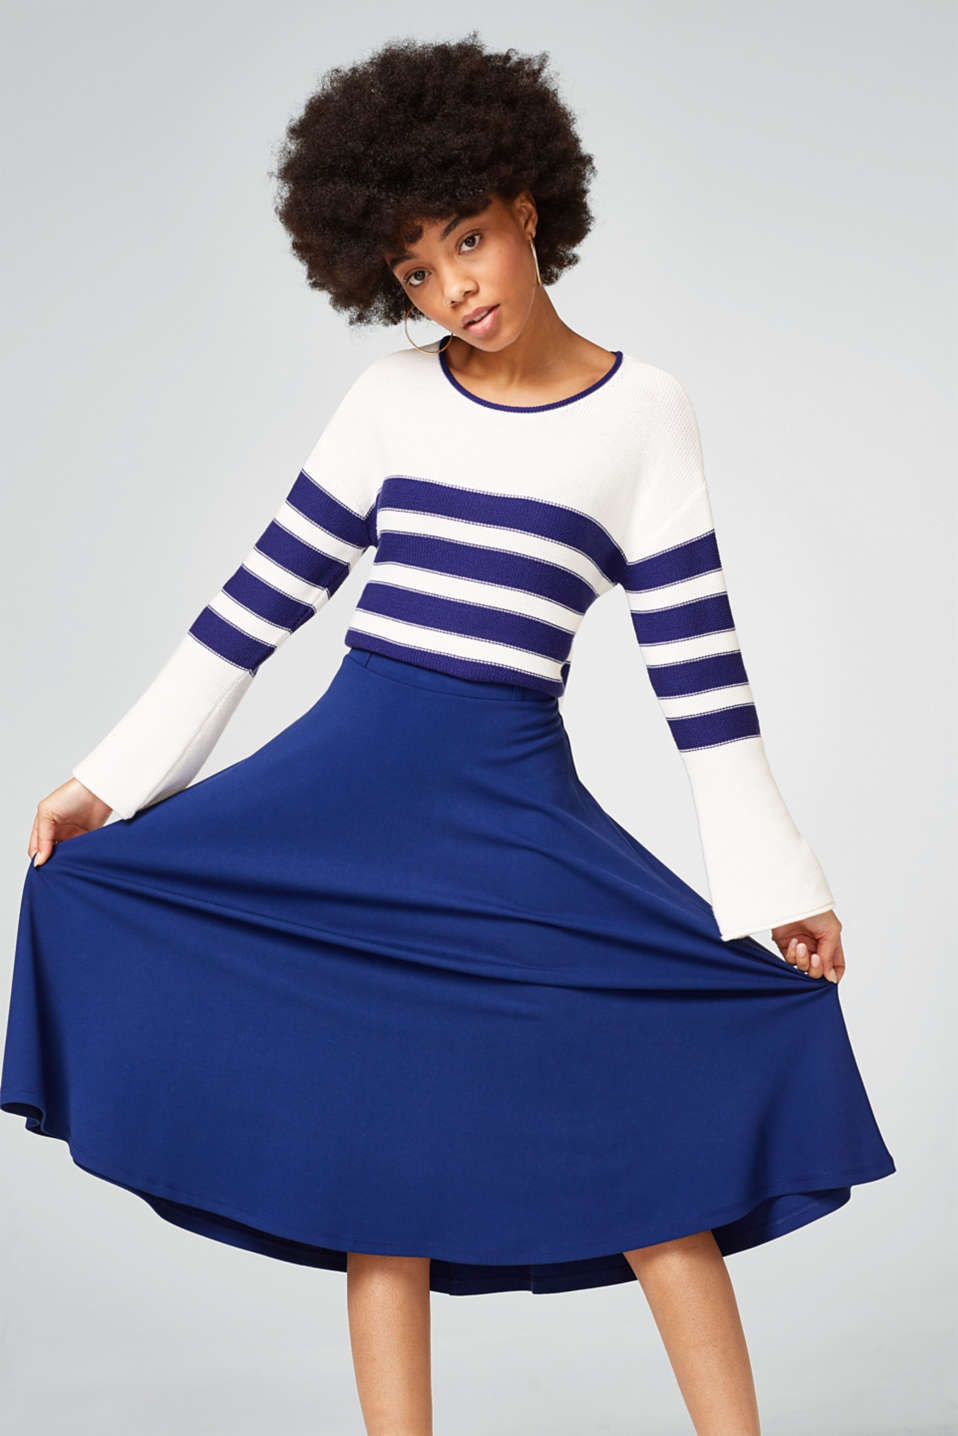 Esprit - Swirling stretch jersey skirt with an elasticated waistband